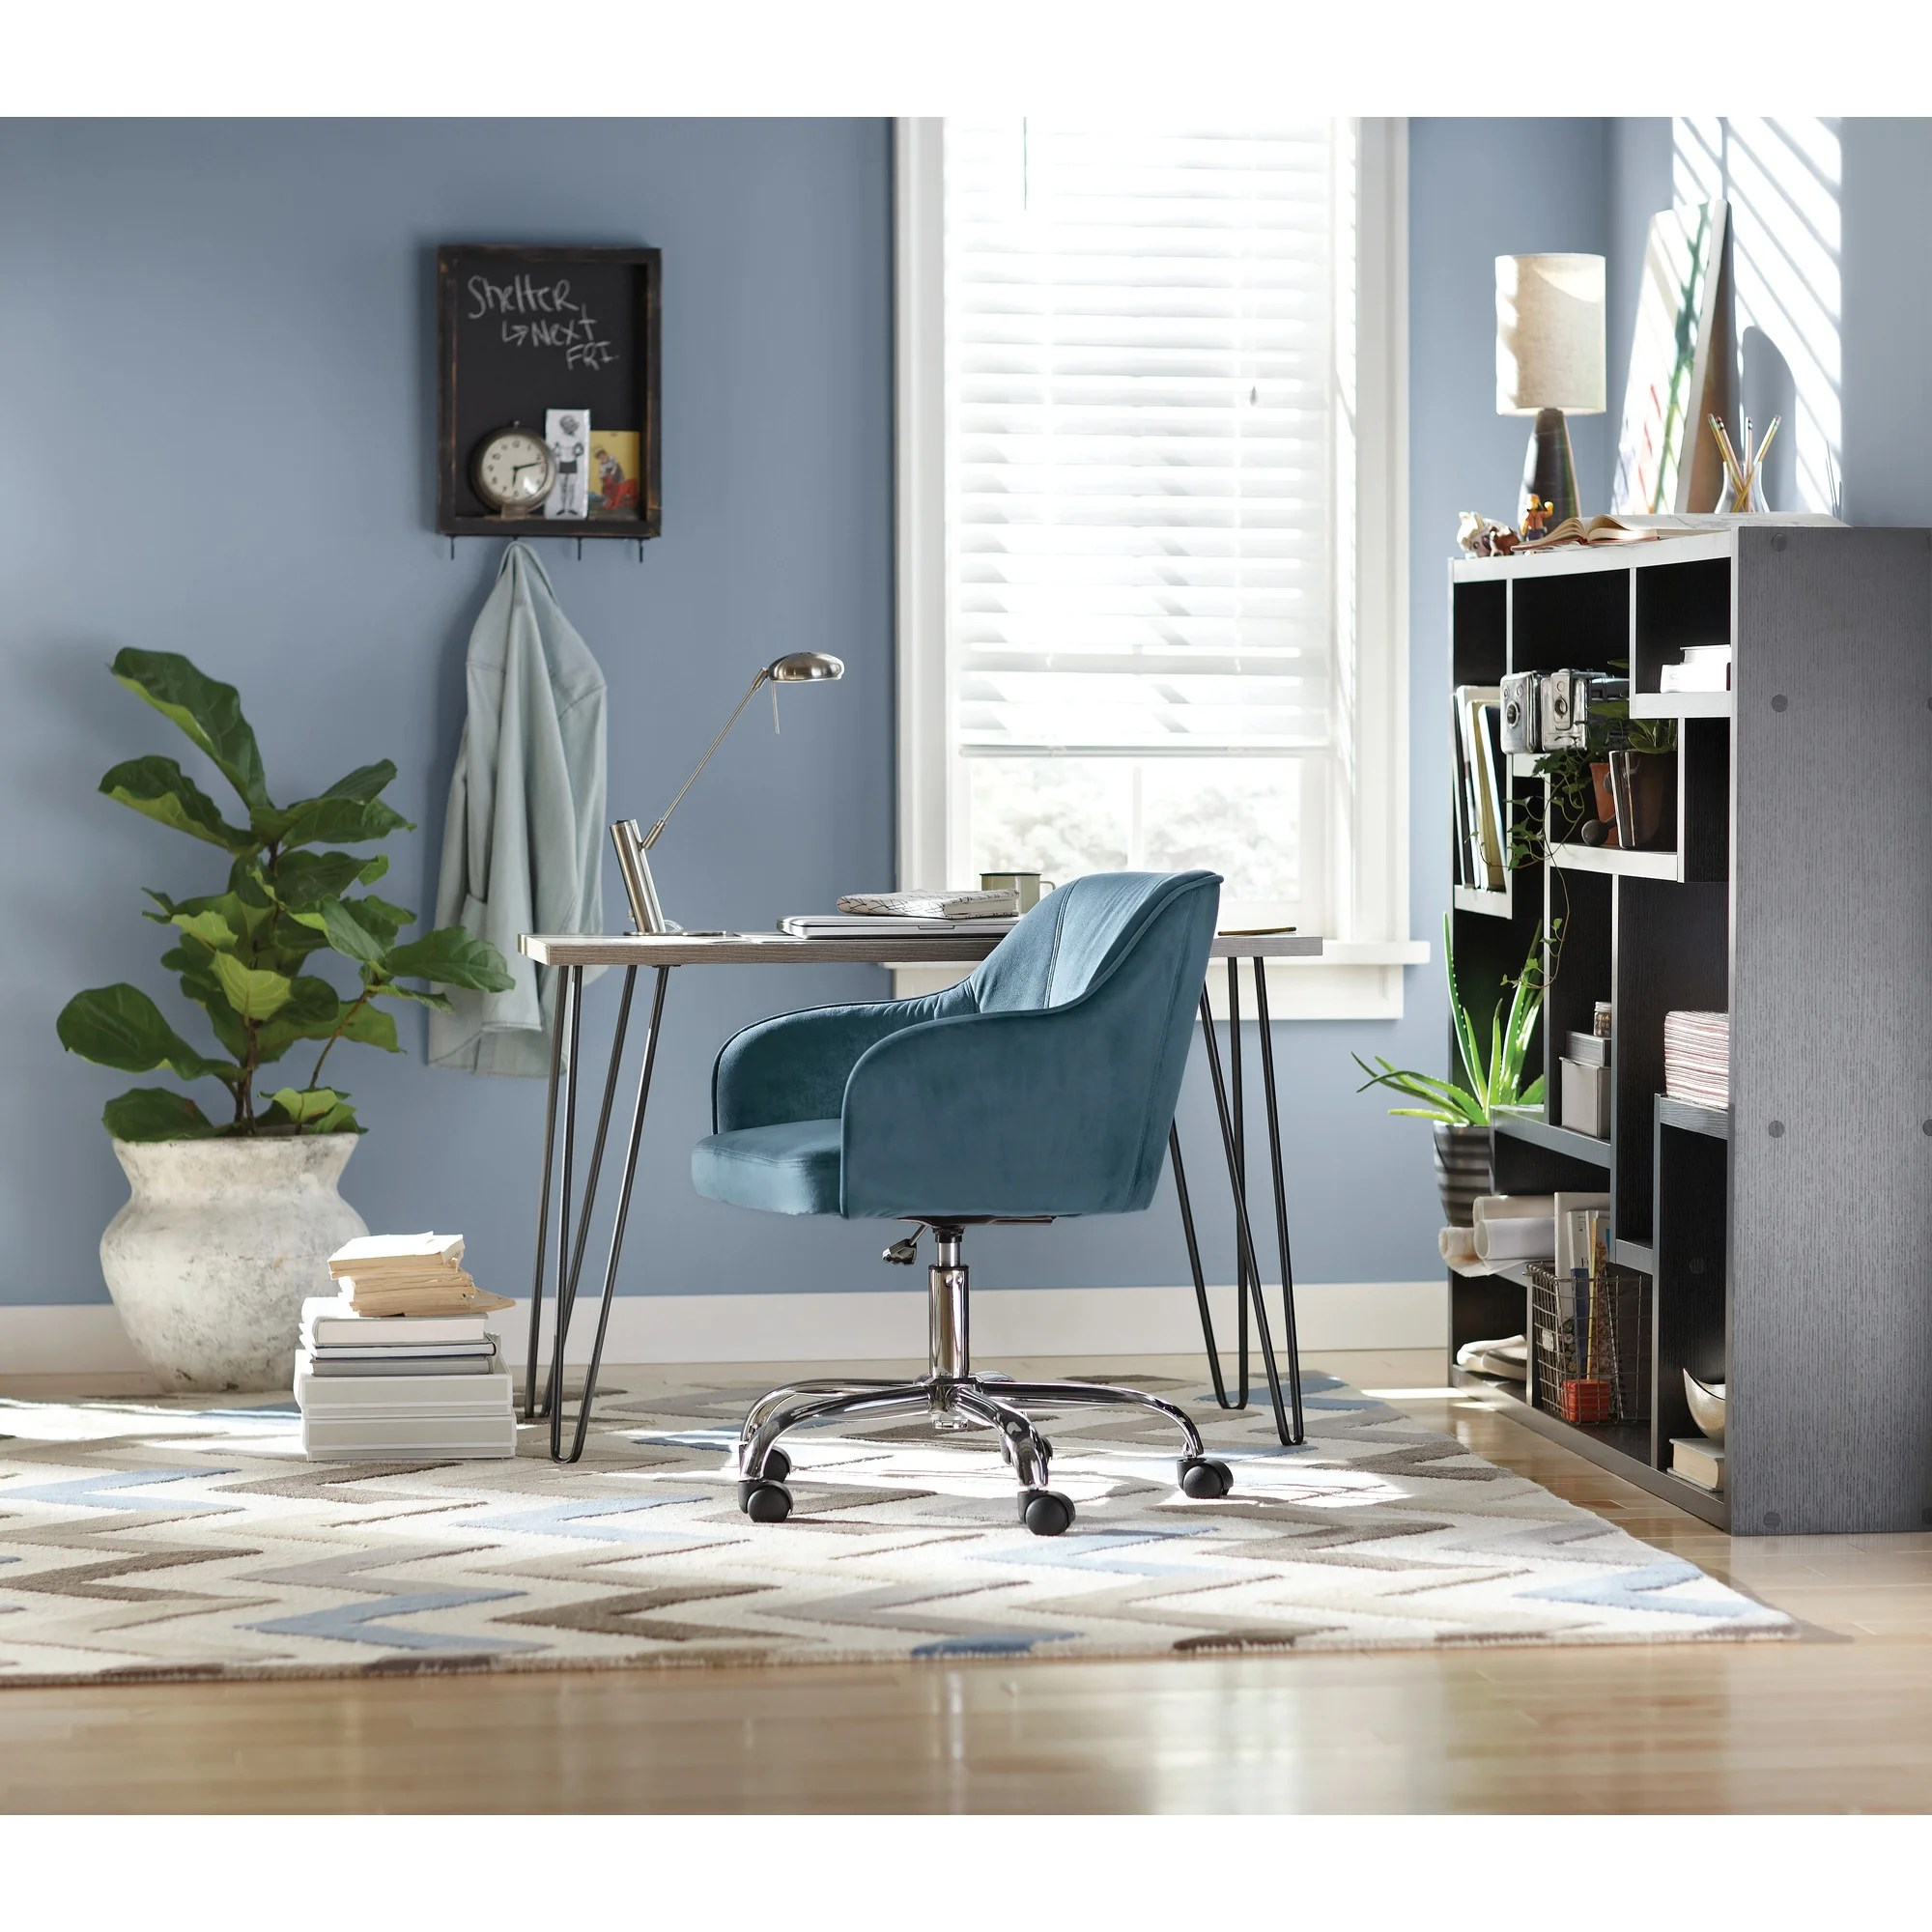 office chair velvet home depot adirondack chairs candace and reviews joss main